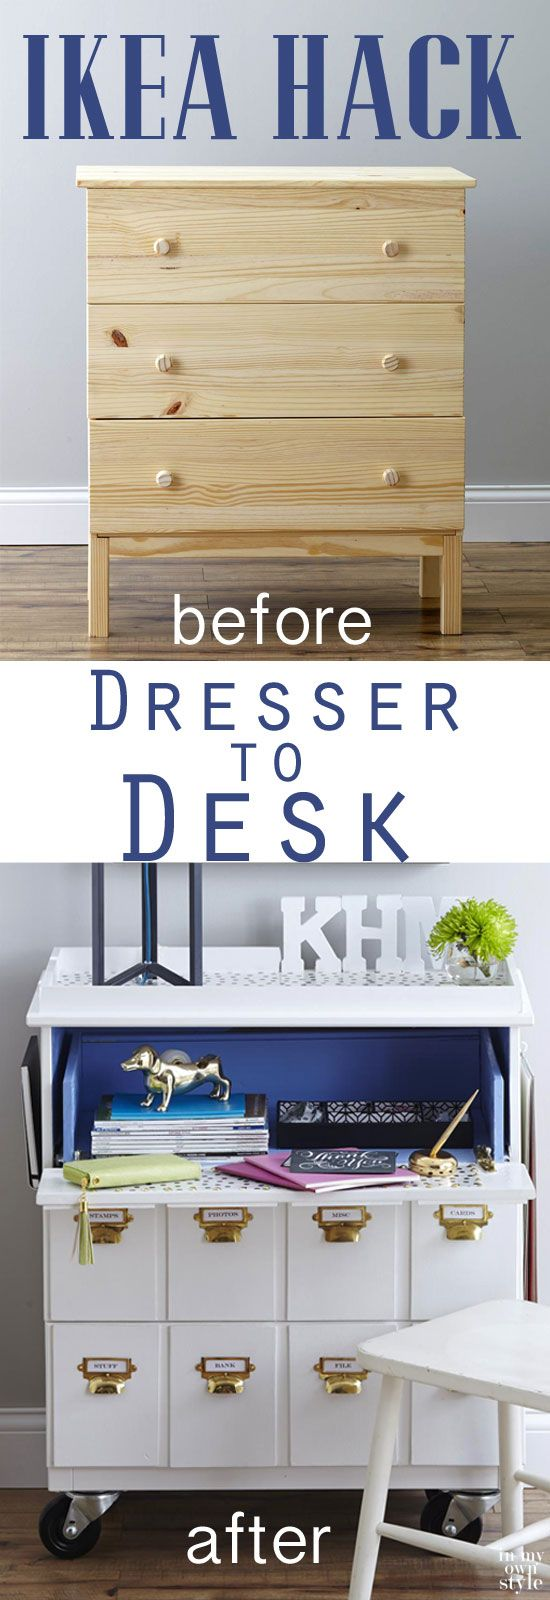 141 best furniture makeover images on pinterest Ikea furniture makeover